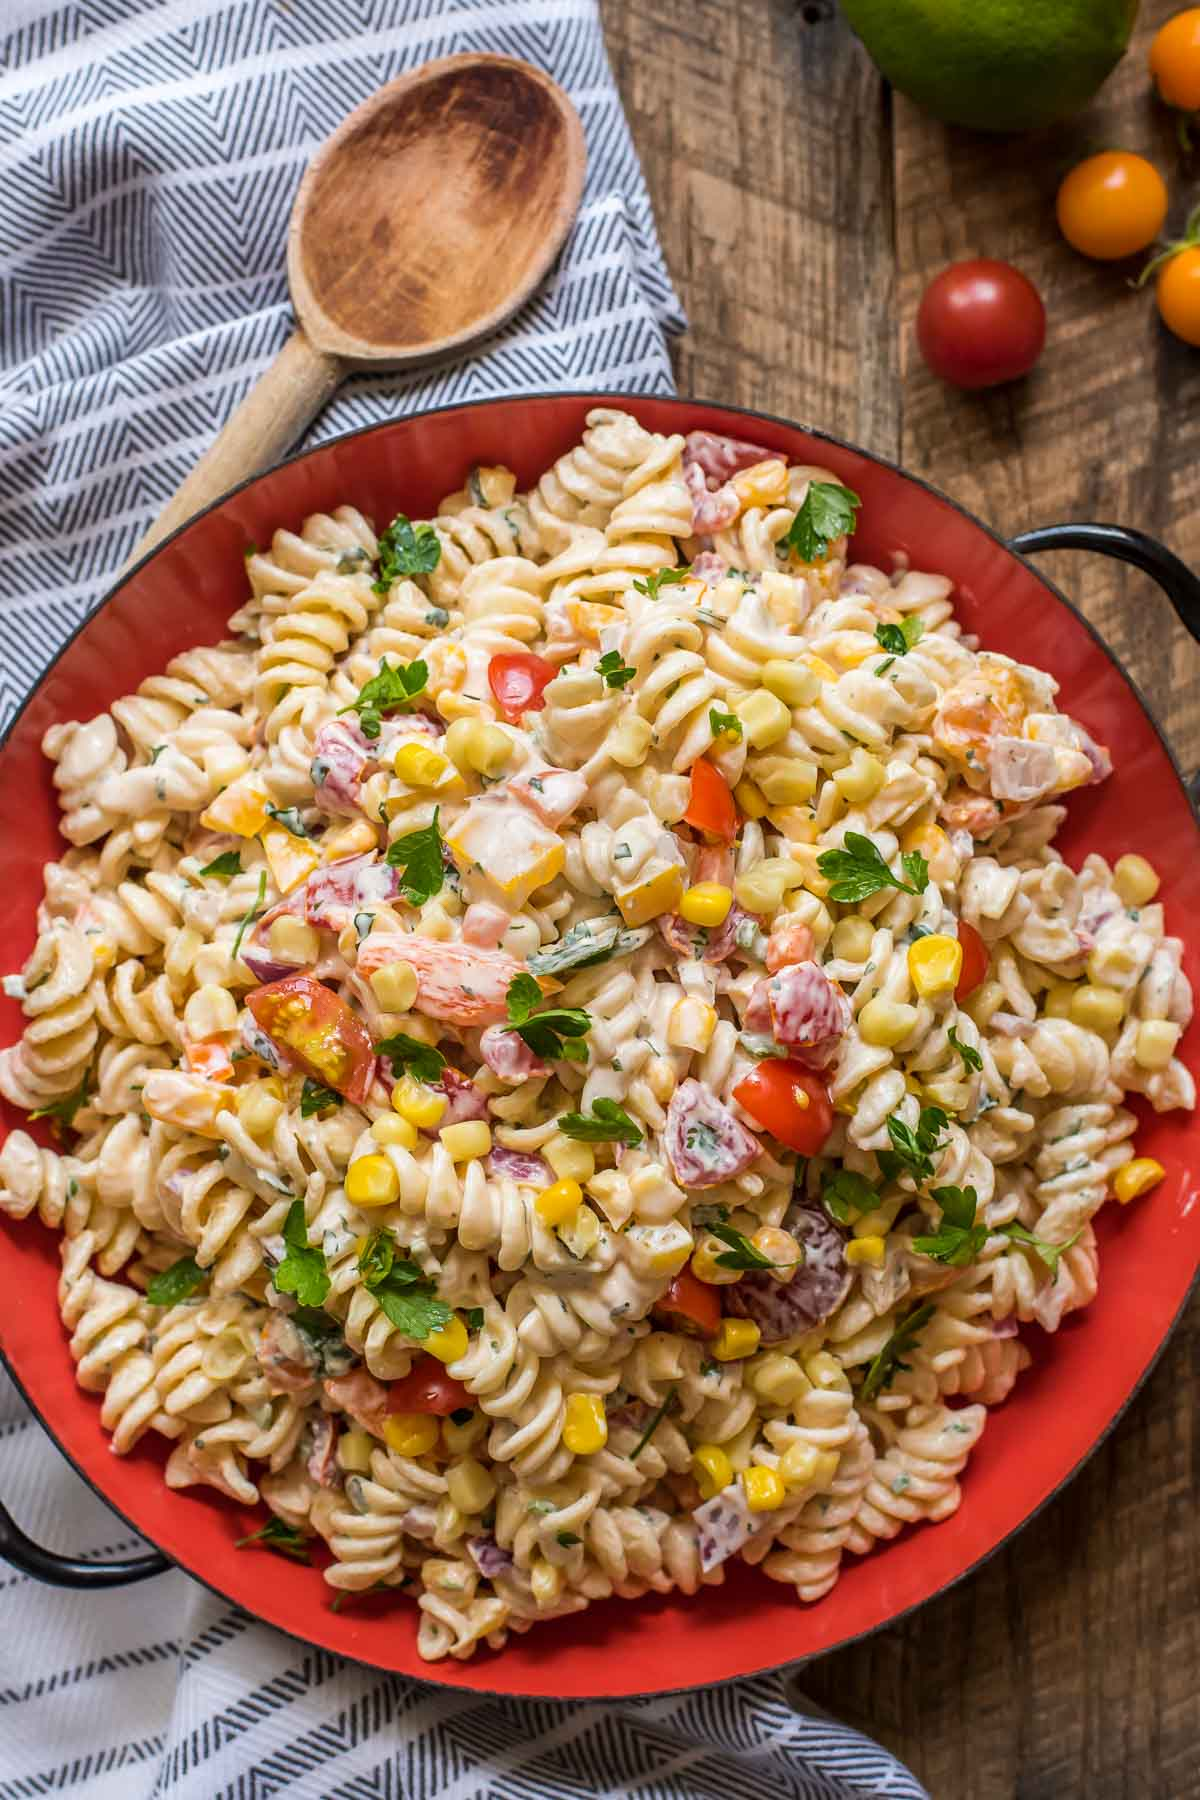 Guests will gobble up this Southwest Pasta Salad packed with late summer veggies, cilantro, and lime.